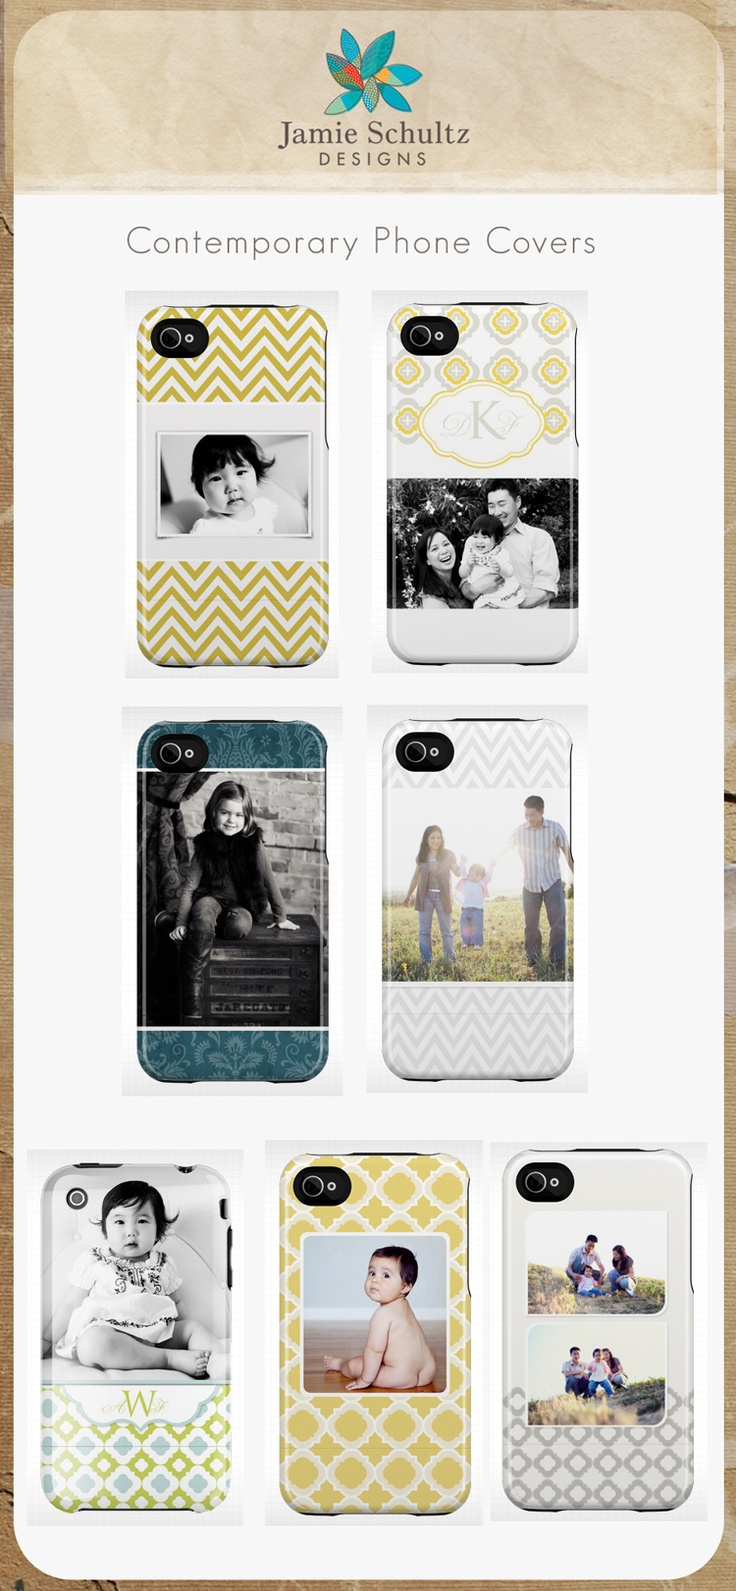 Want one BAD!    Contemporary iPhone Covers by Jamie Schultz Designs